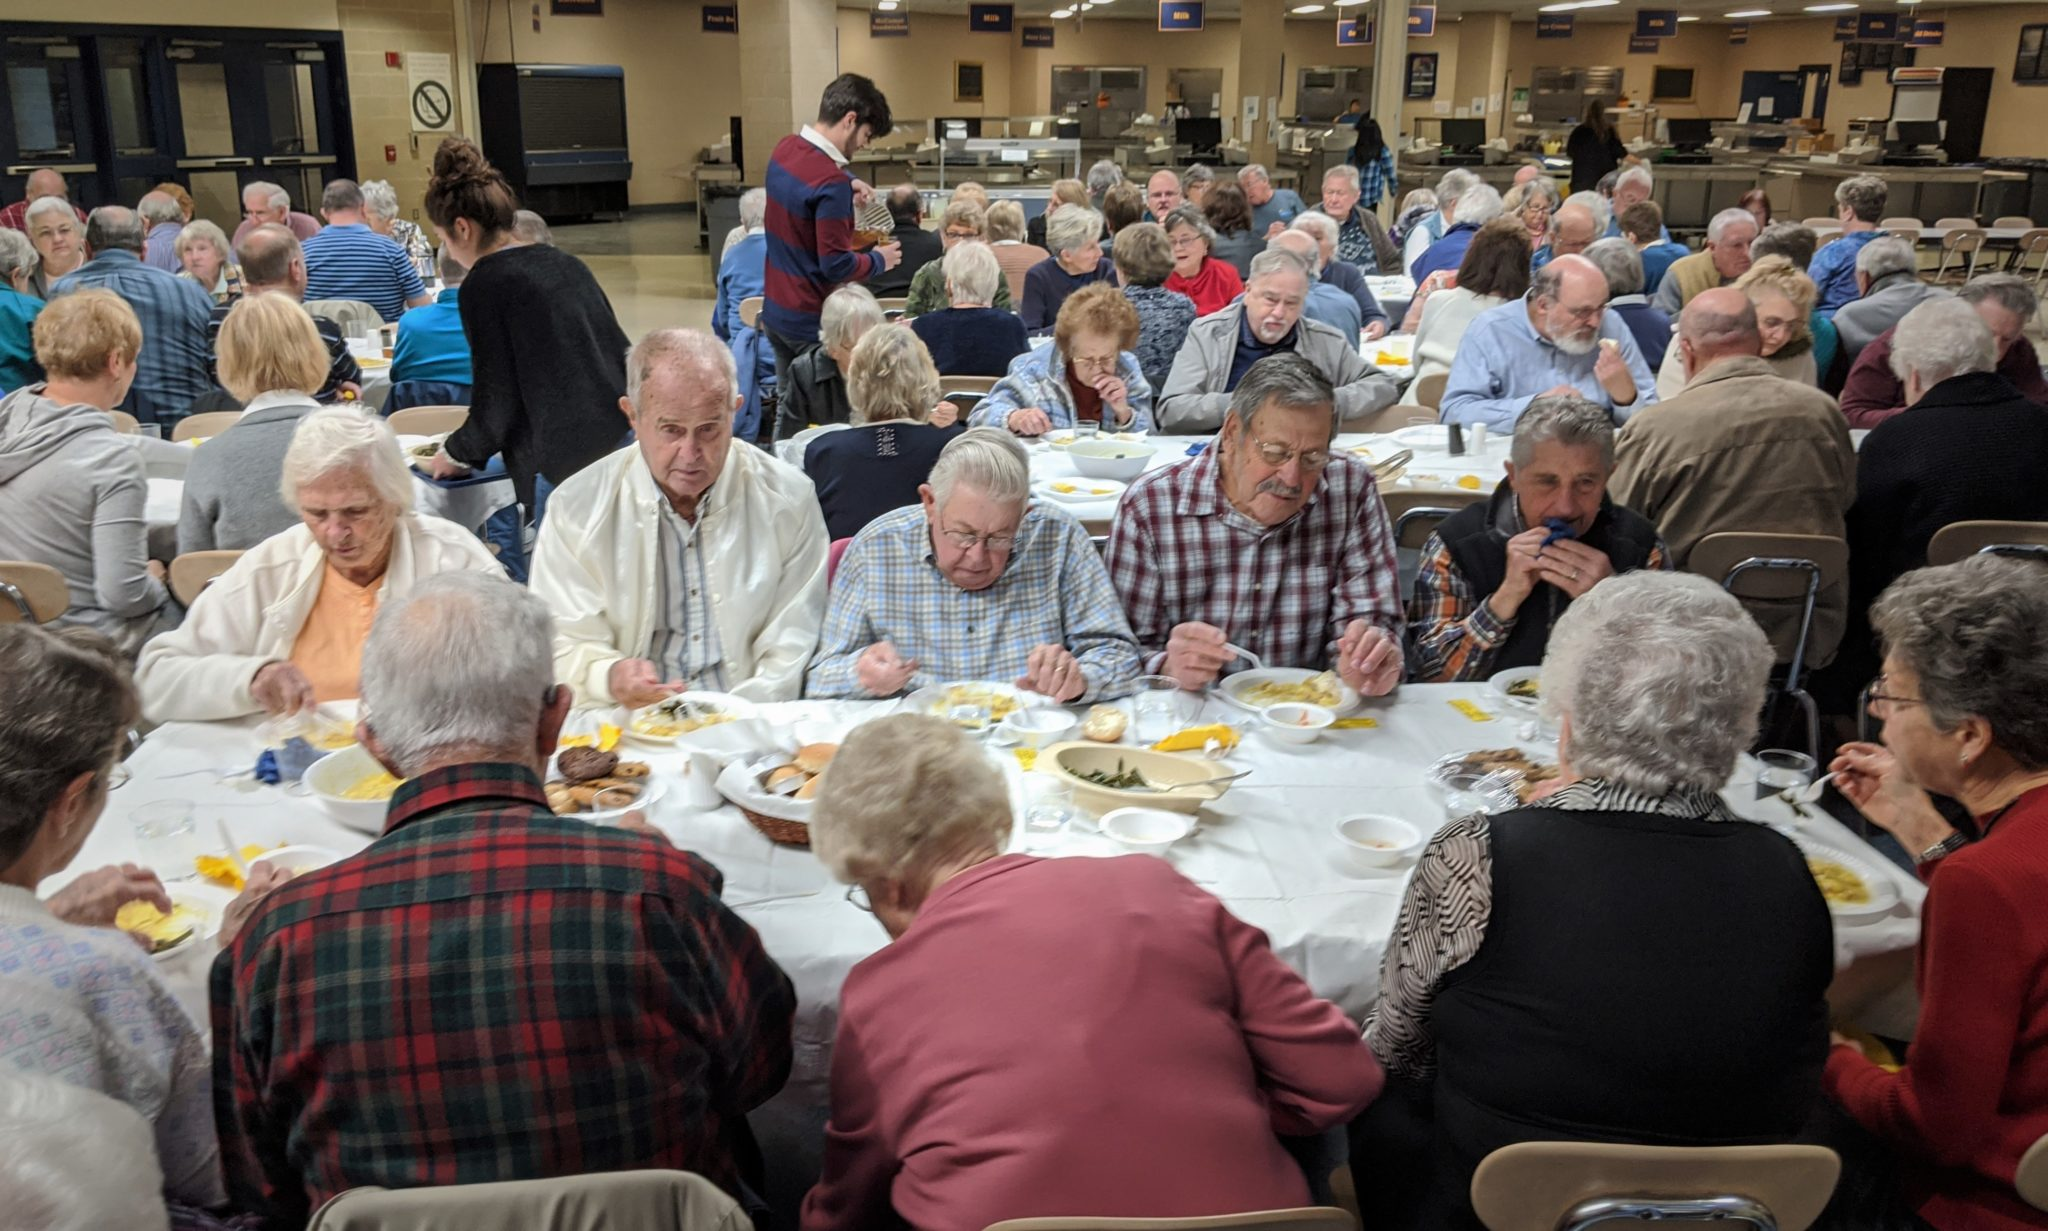 Senior citizens eating dinner in cafeteria.